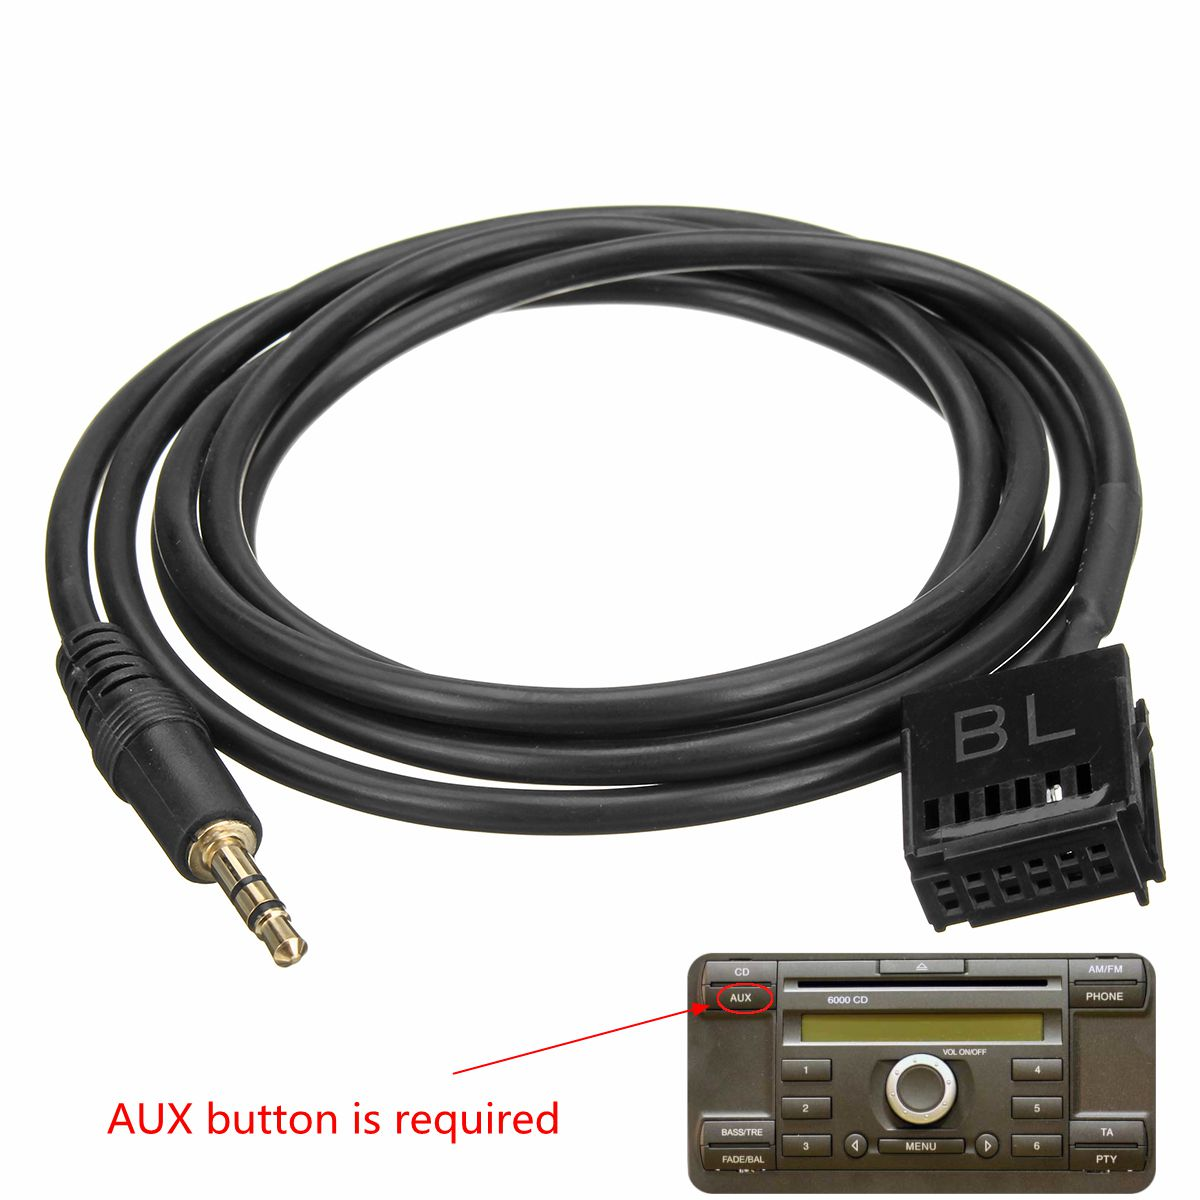 Best Price 6000cd Aux Input Adapter Cable 35mm Jack Connect Mp3 Wiring Mobile Phone For Ford Focus